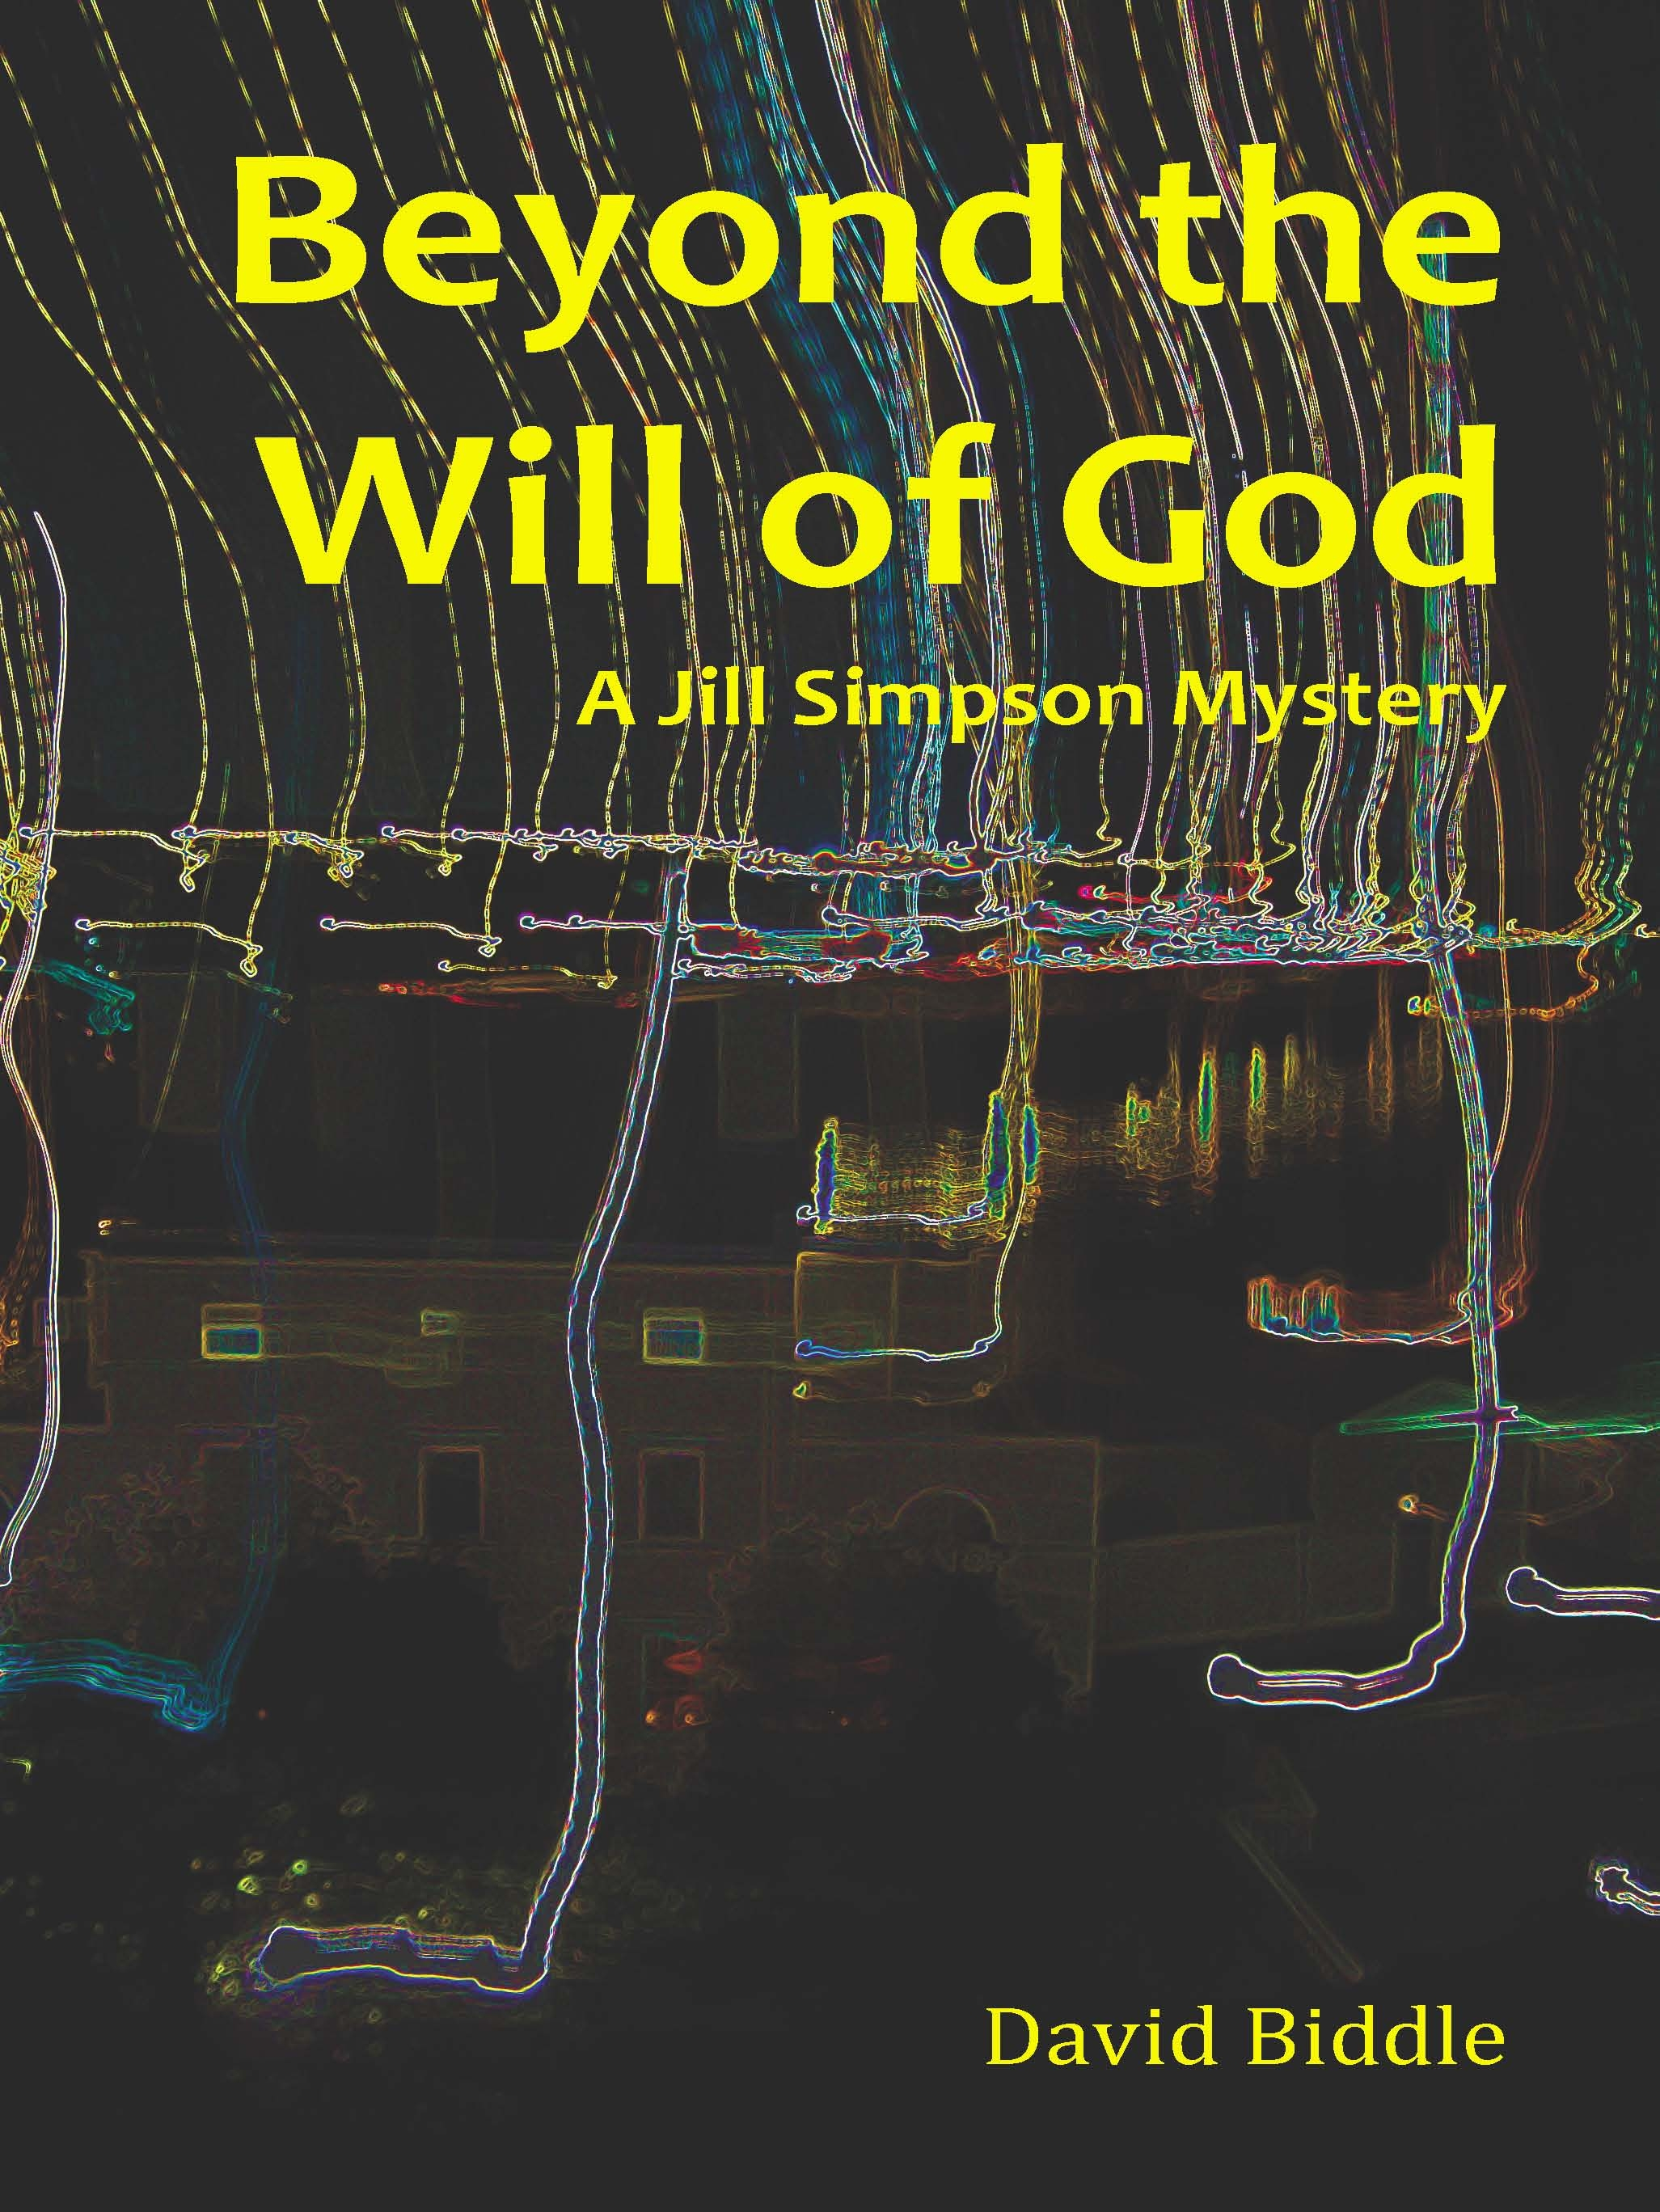 Sneak Peek: Beyond the Will of God by David Biddle